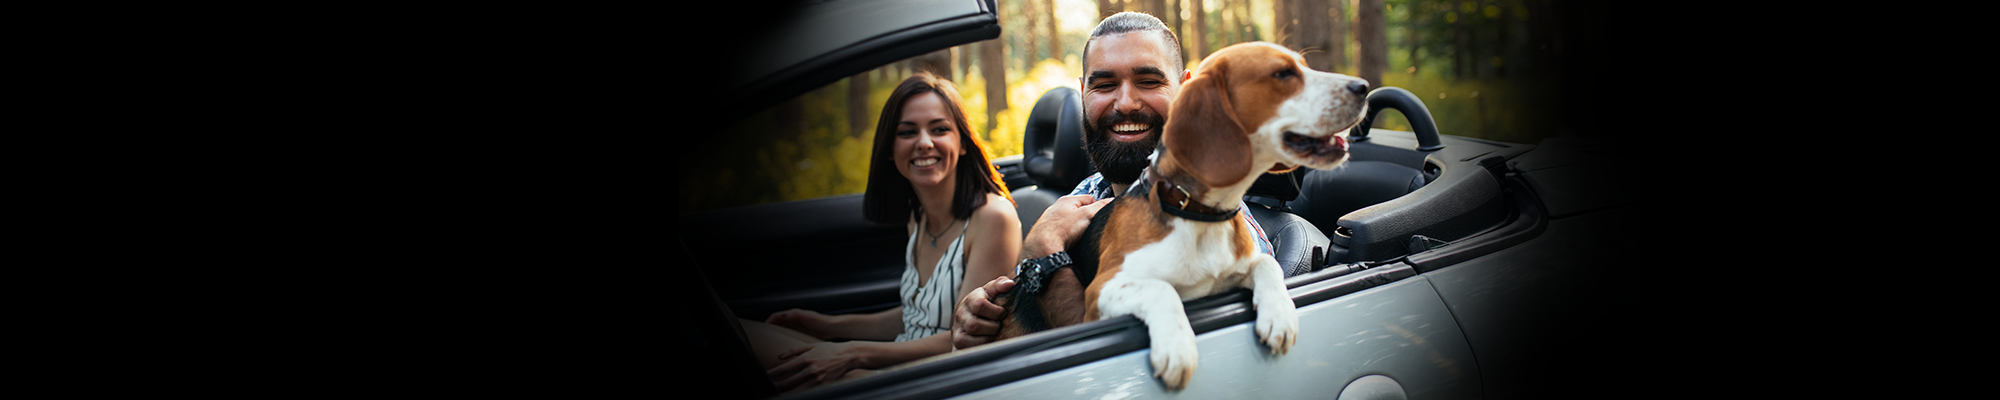 Couple and dog in a car